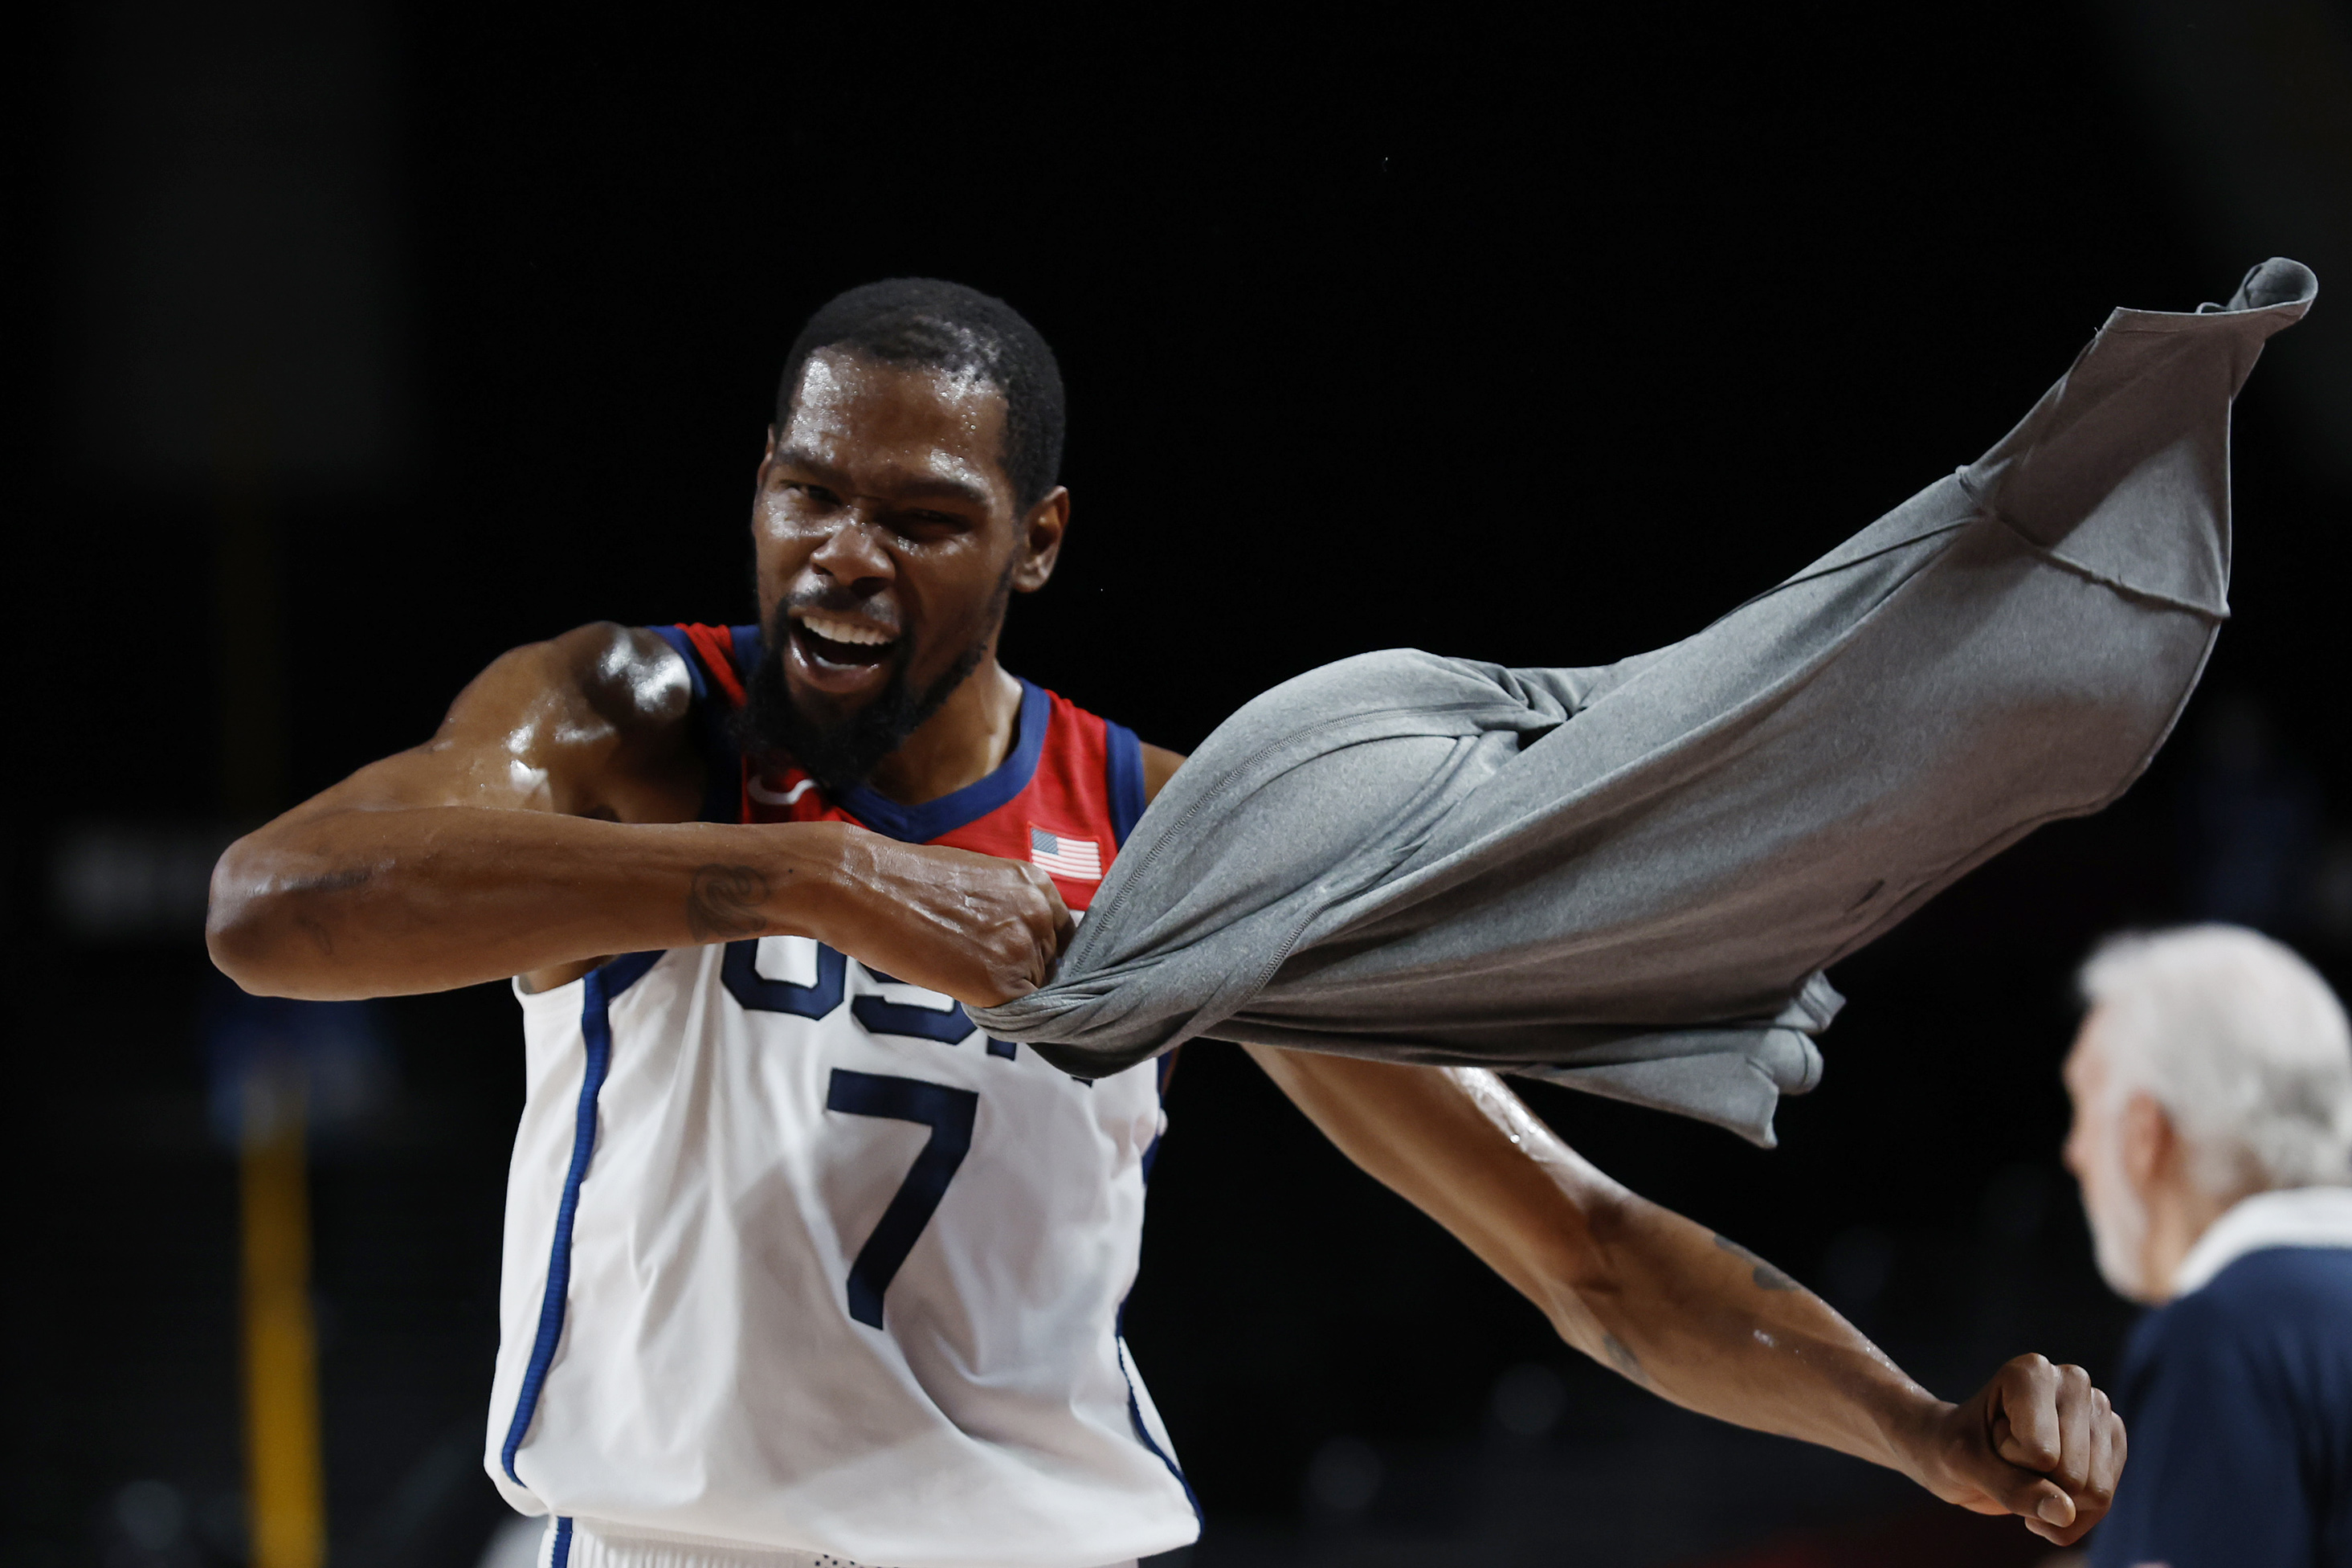 United States forward Kevin Durant (7) celebrates on the bench against Australia in the third quarter during the Tokyo 2020 Olympic Summer Games at Saitama Super Arena.